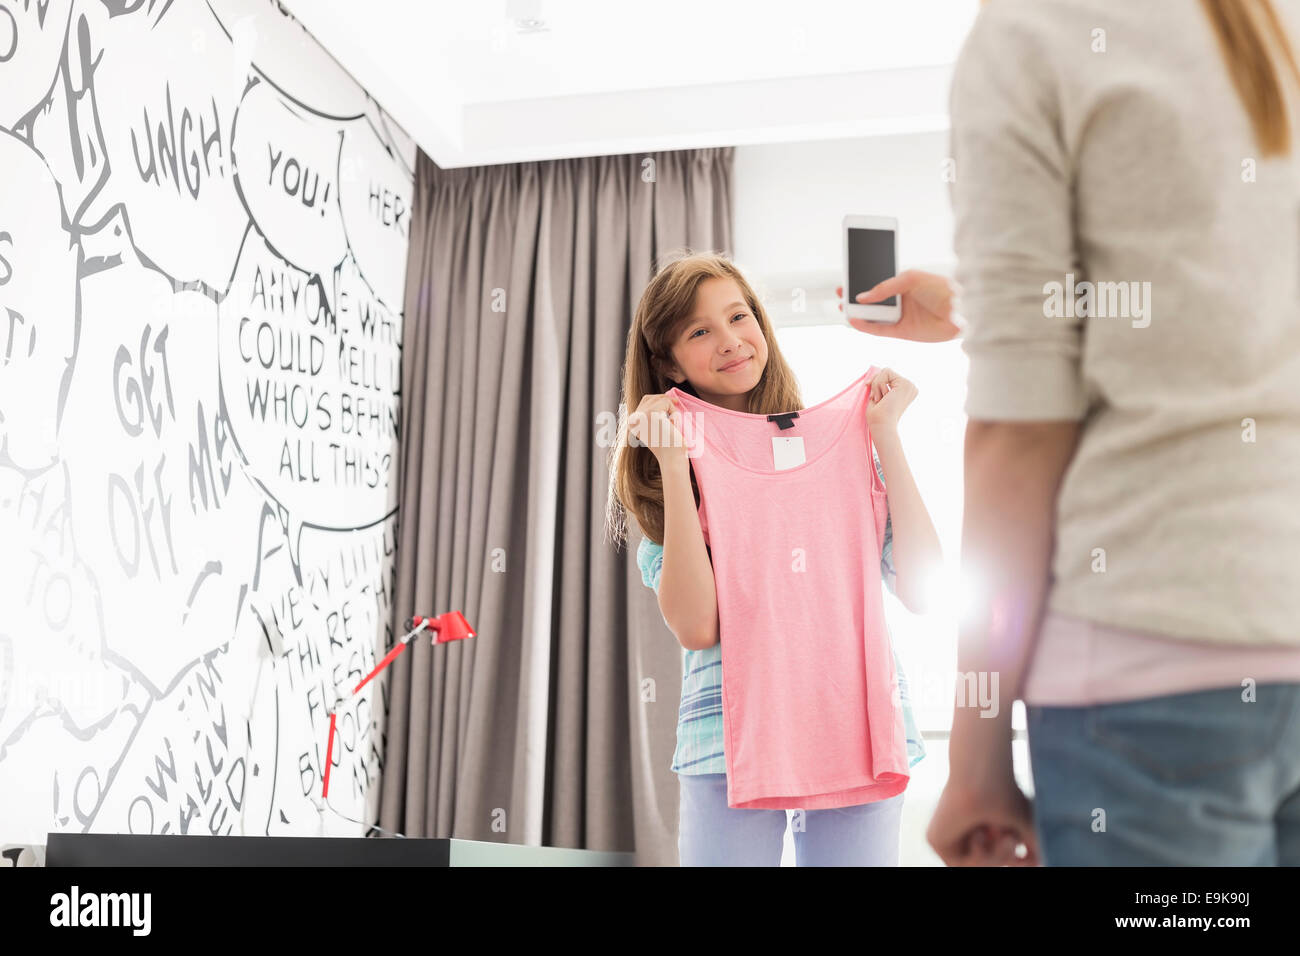 Girl trying on clothes while sister photographing her at home - Stock Image